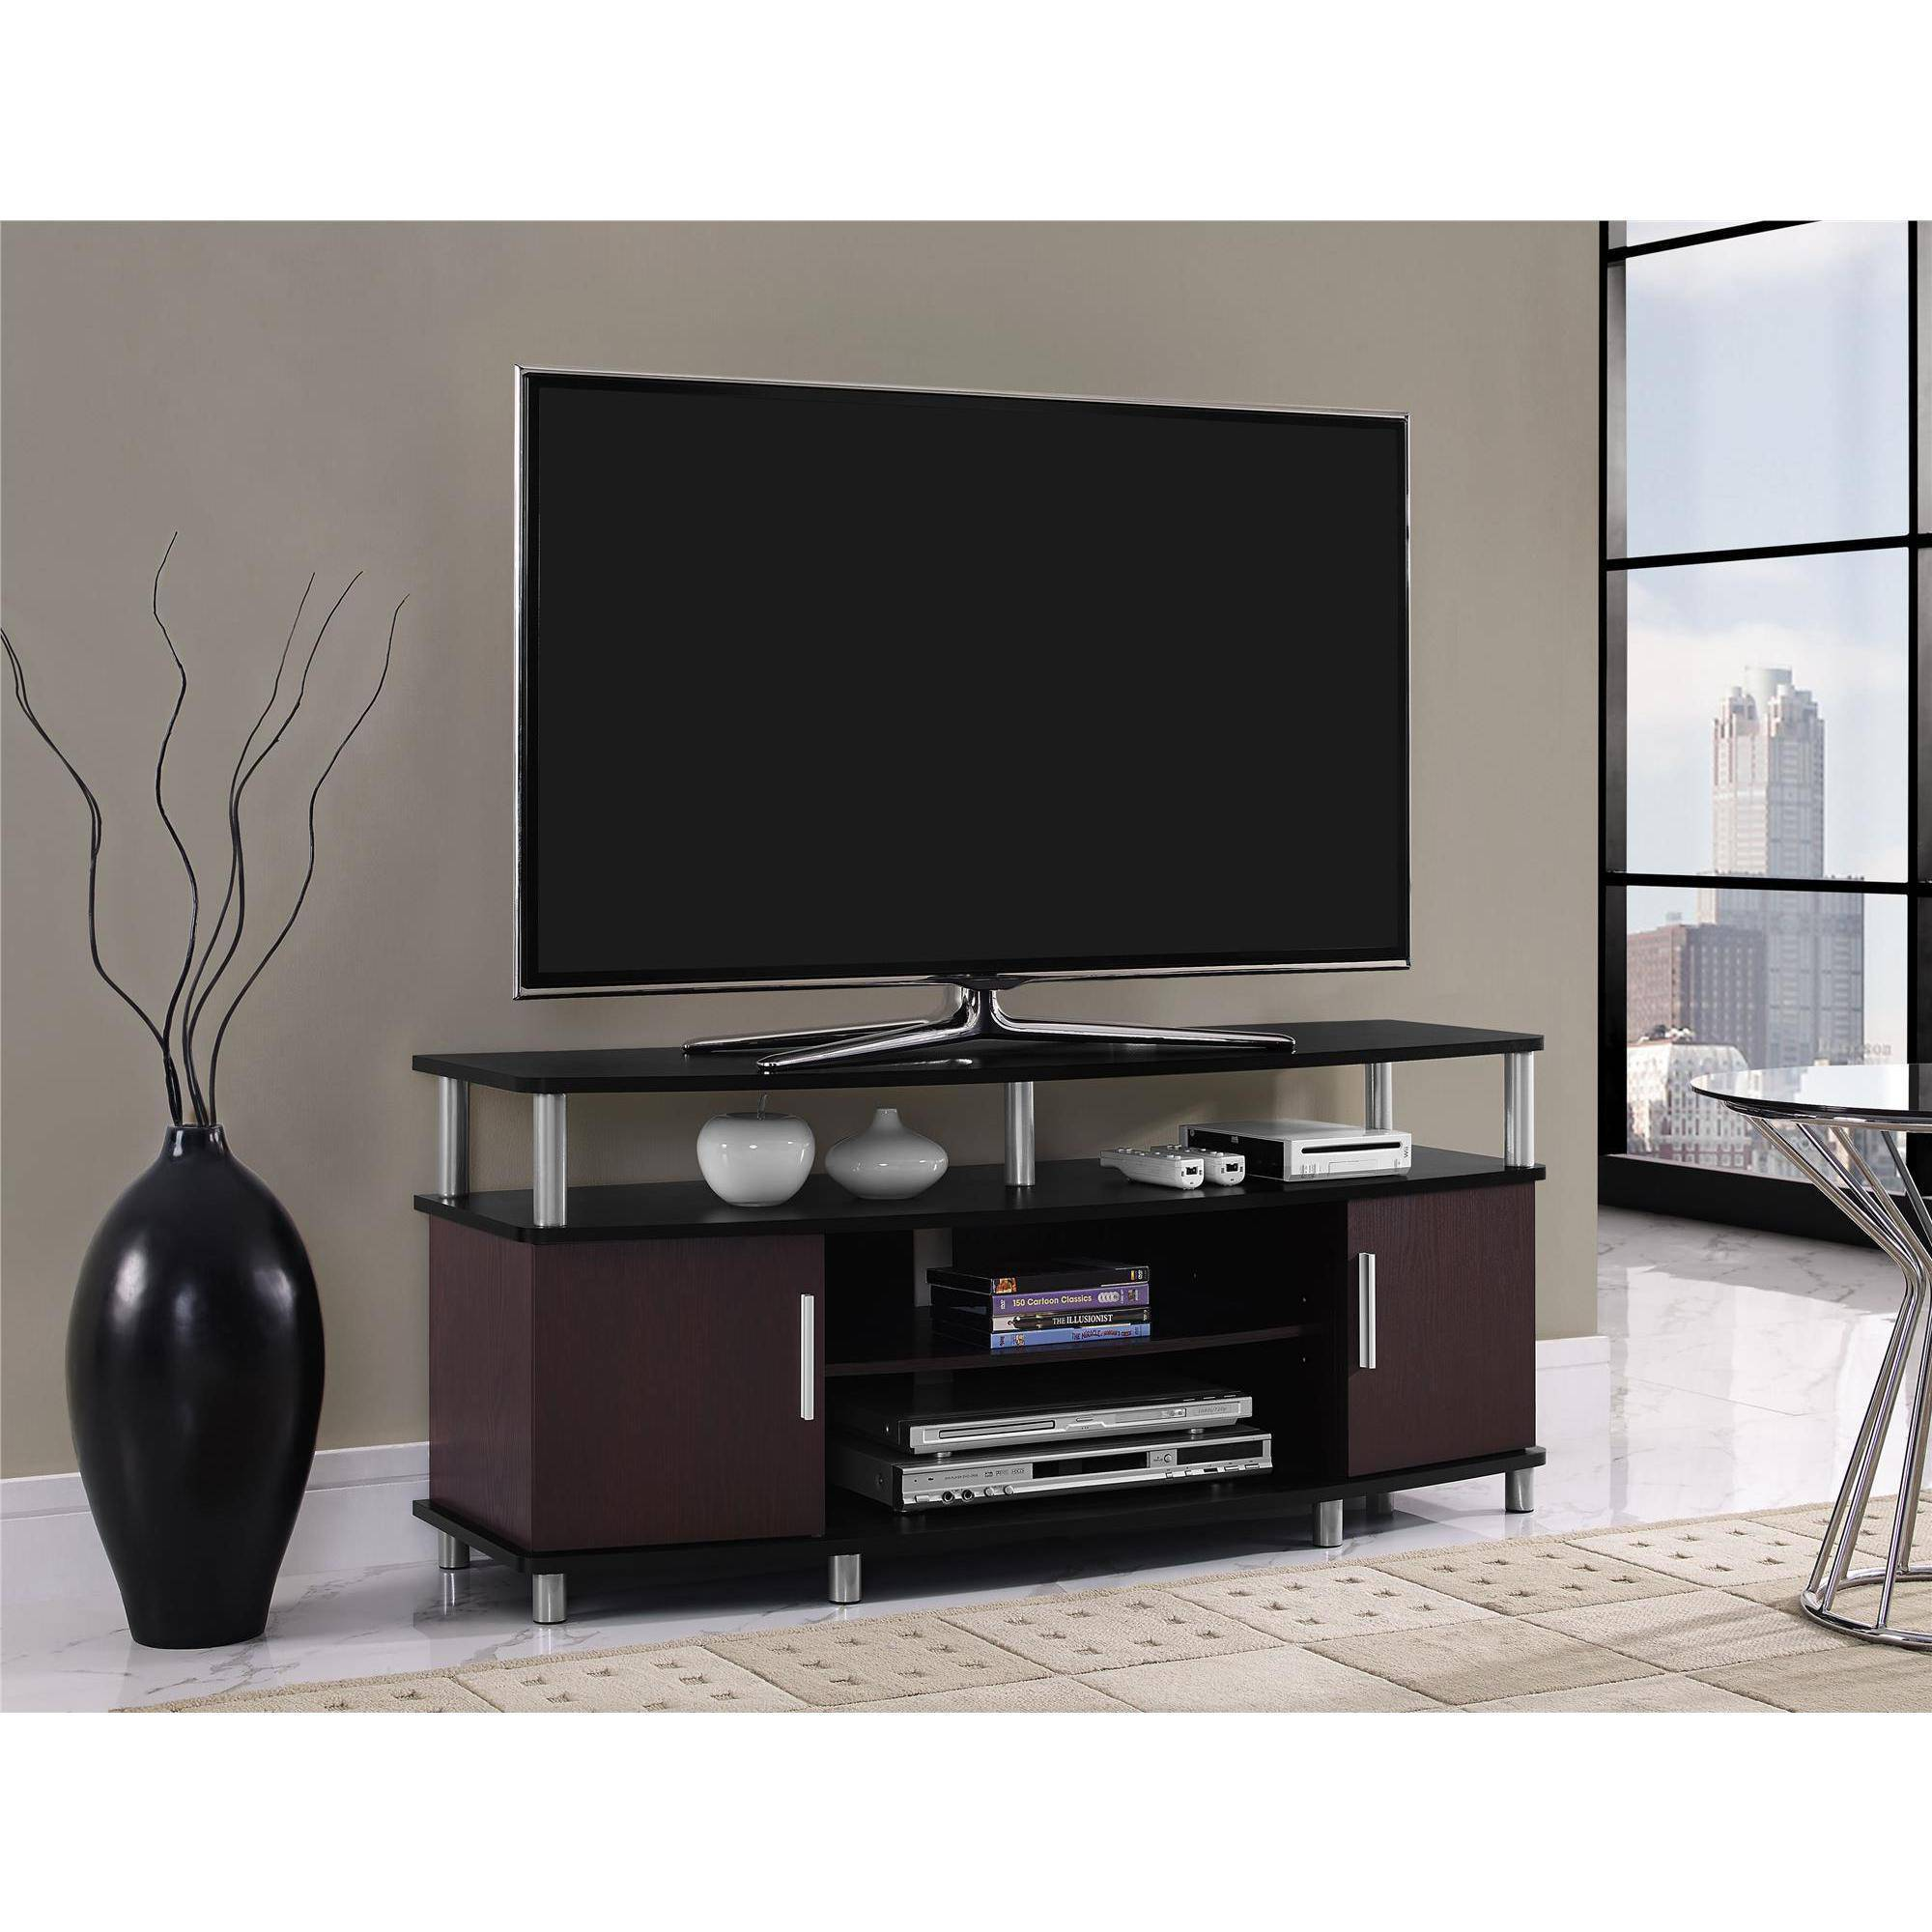 Living Room 50 Off Food tv stands & entertainment centers - walmart